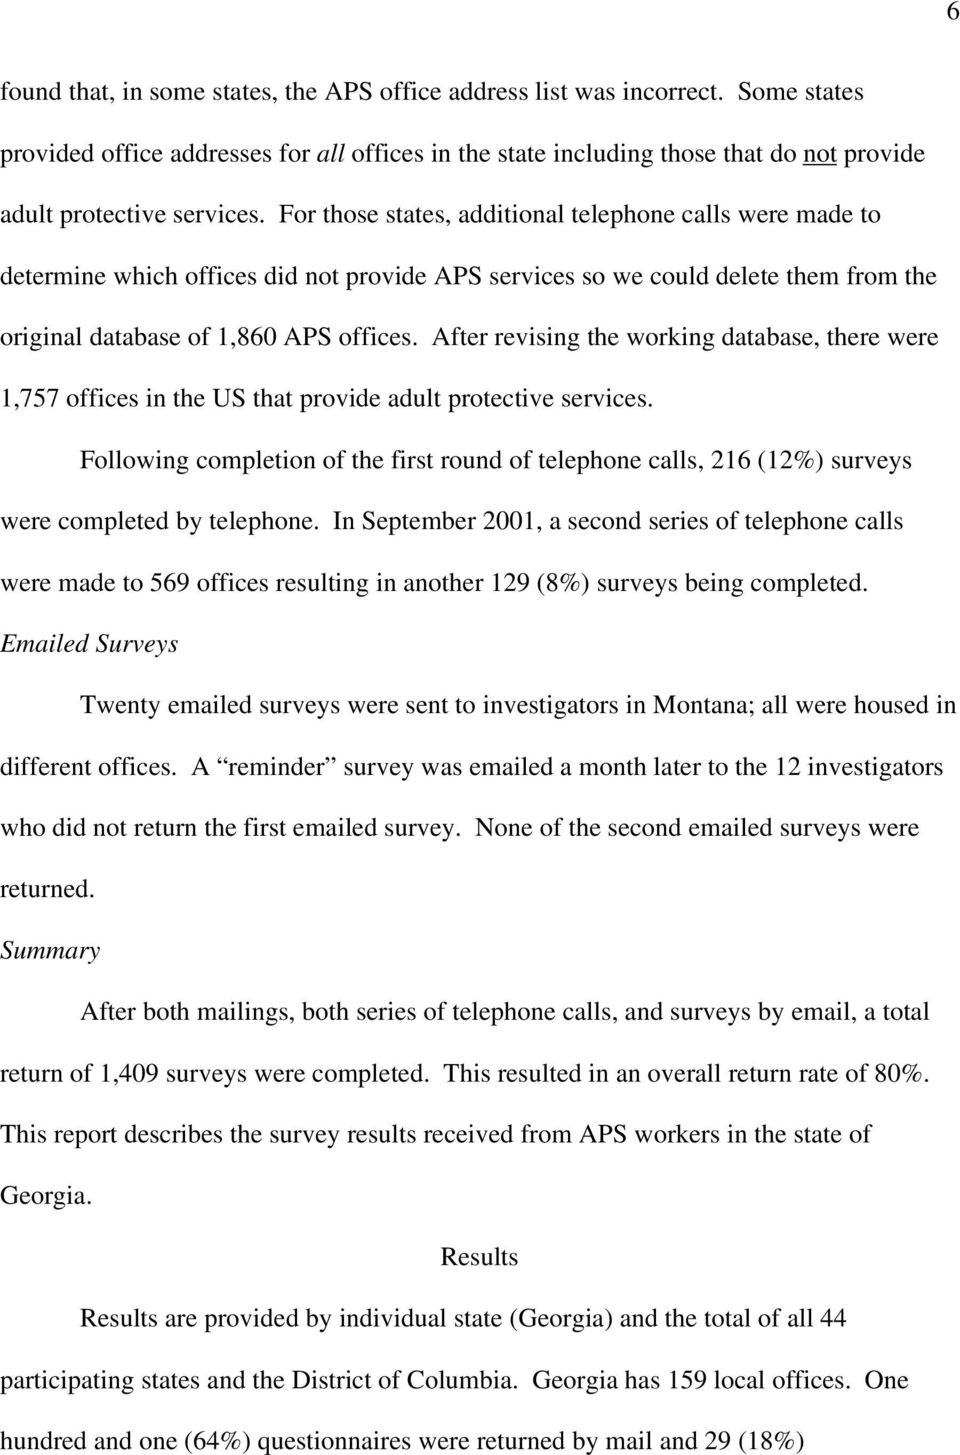 For those states, additional telephone calls were made to determine which offices did not provide APS services so we could delete them from the original database of 1,860 APS offices.